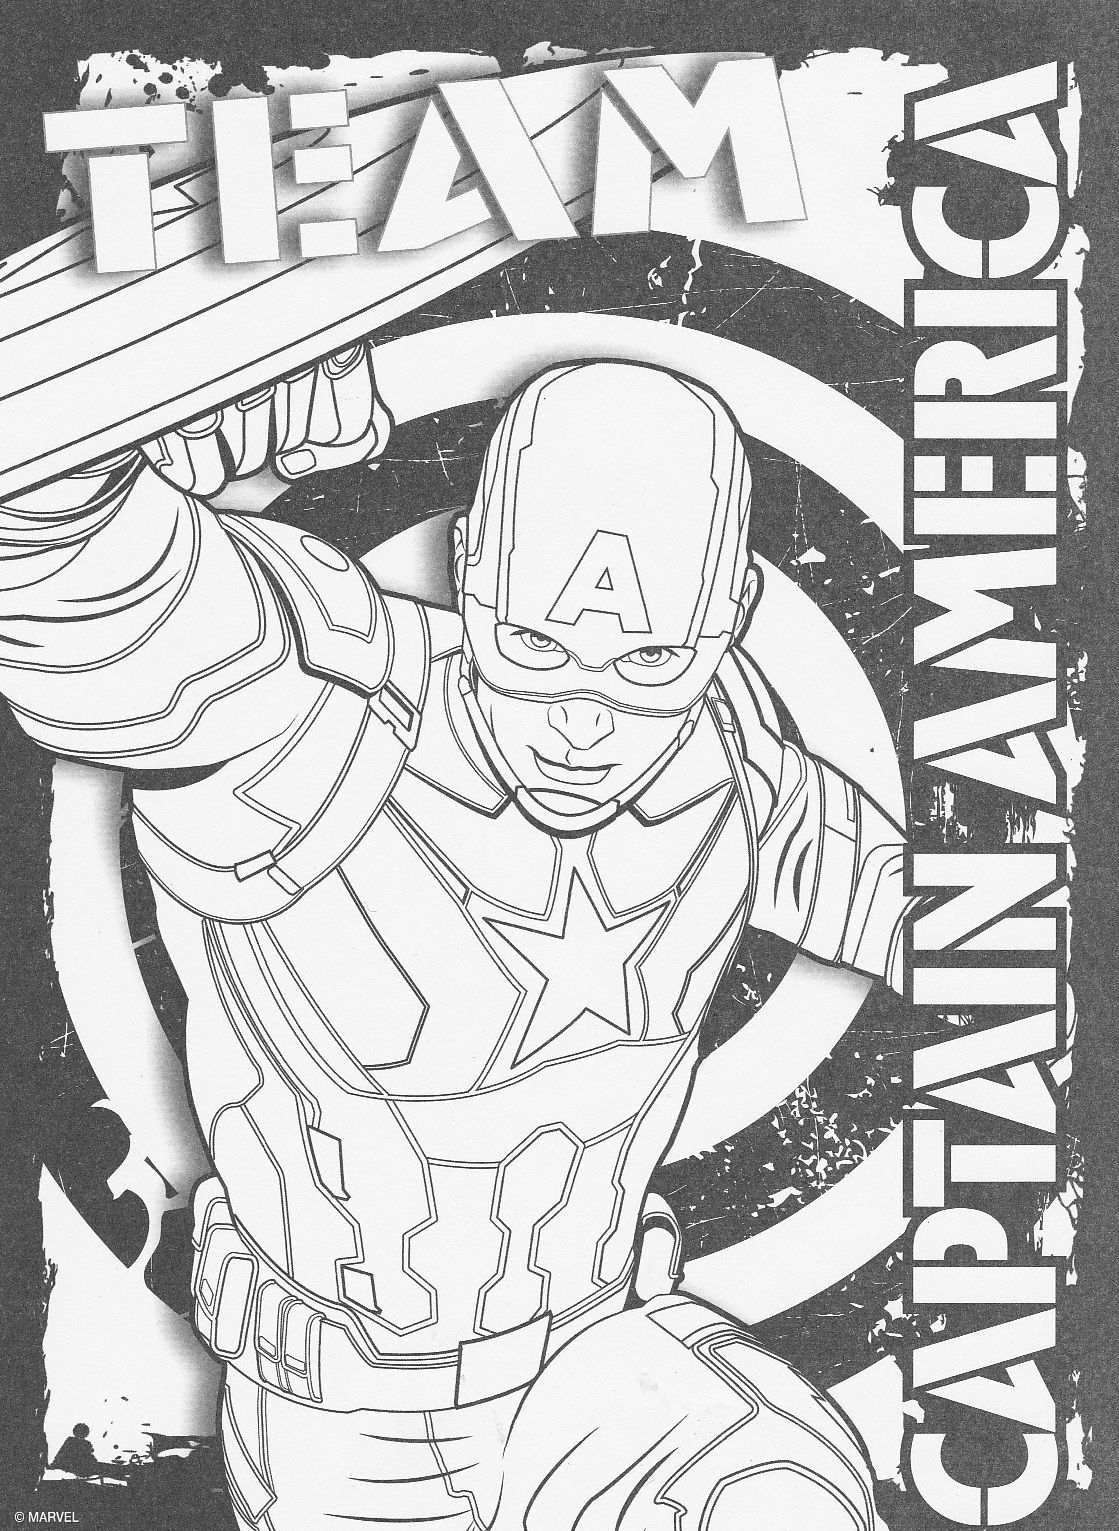 Captain America Civil War Coloring Pages - Coloring Home